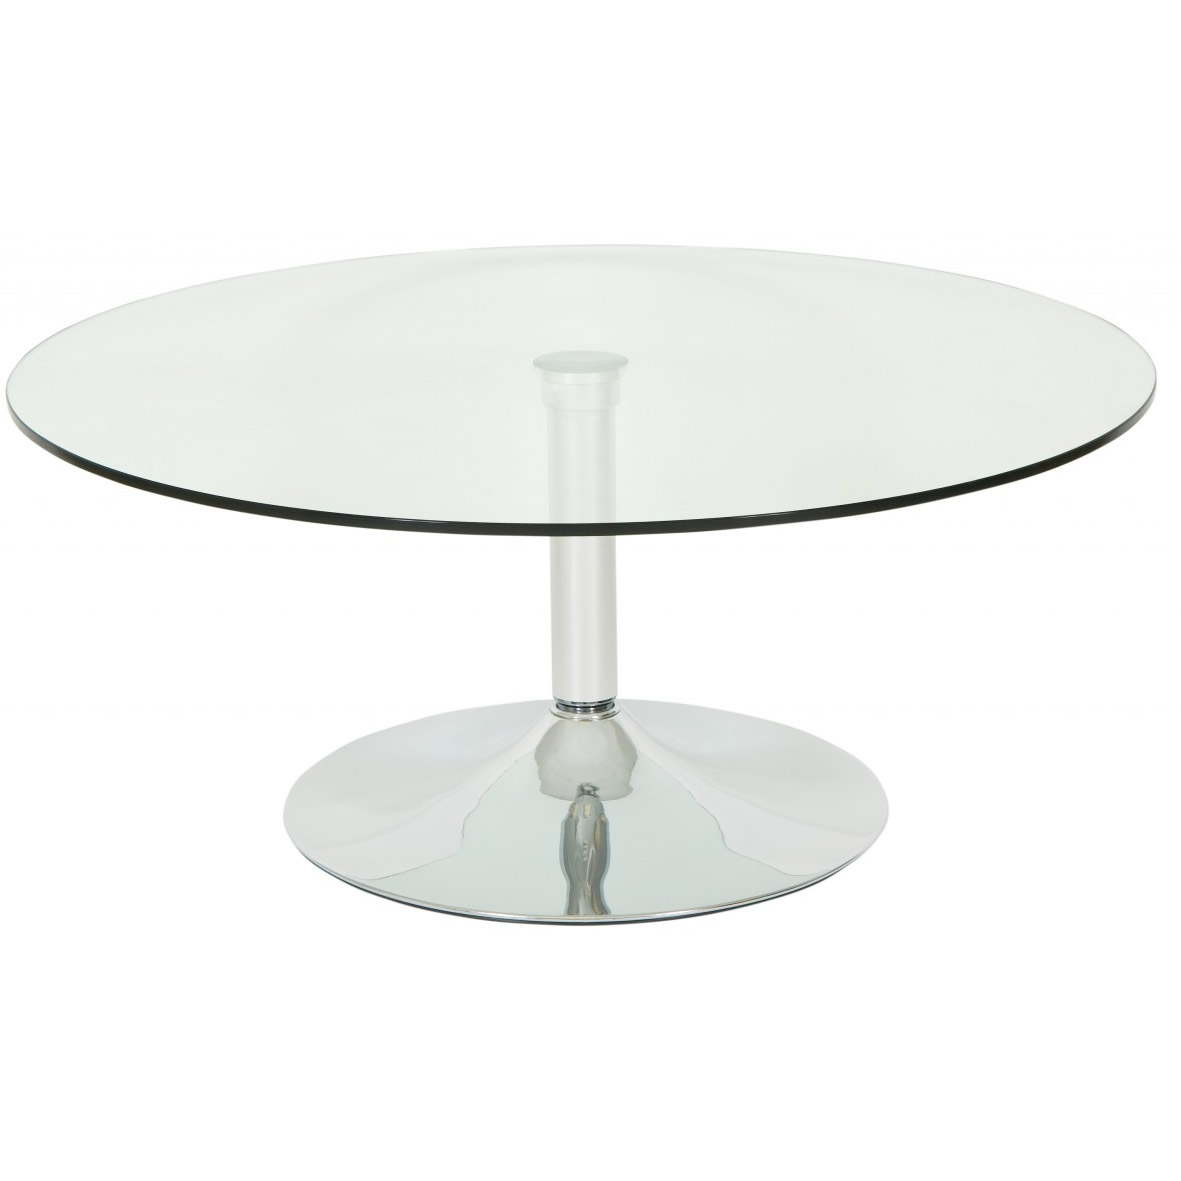 Round Glass Coffee Table Next Day Delivery Levv Roma Round Glass Large Round Glass Coffee Table Large Coffee Tables (Image 9 of 10)